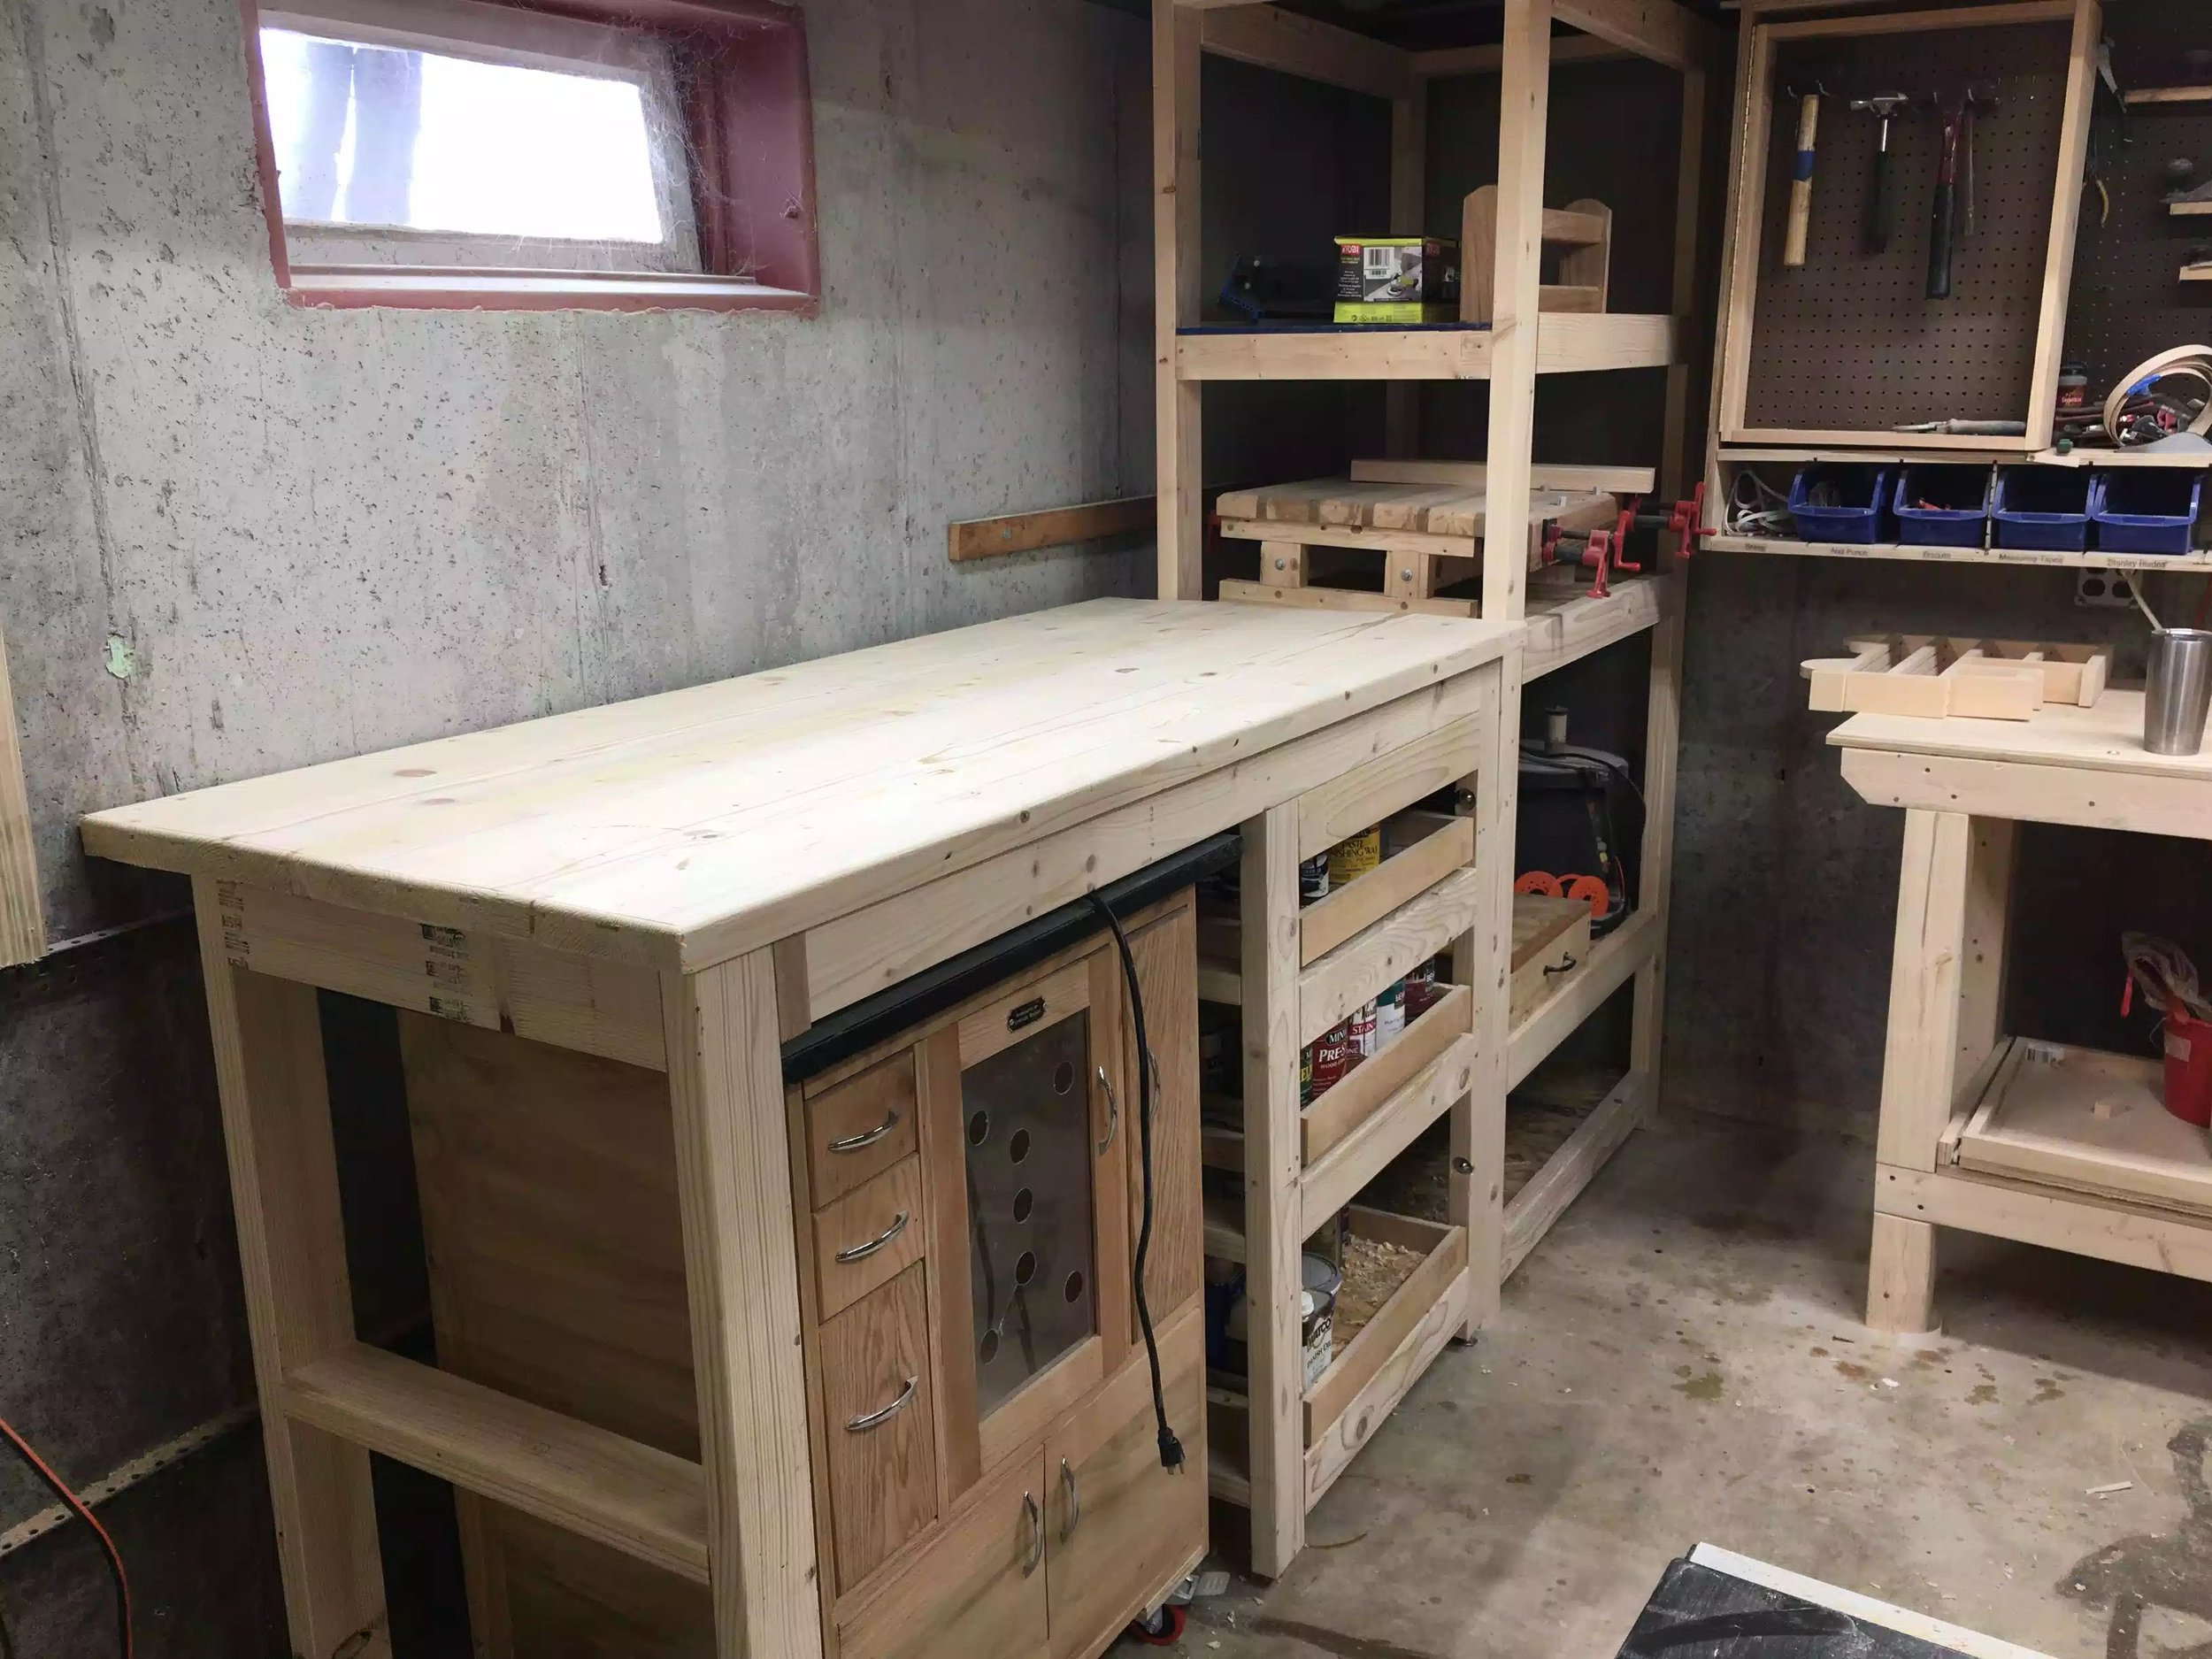 Just made this shelving unit with drawers and a bench (2018)